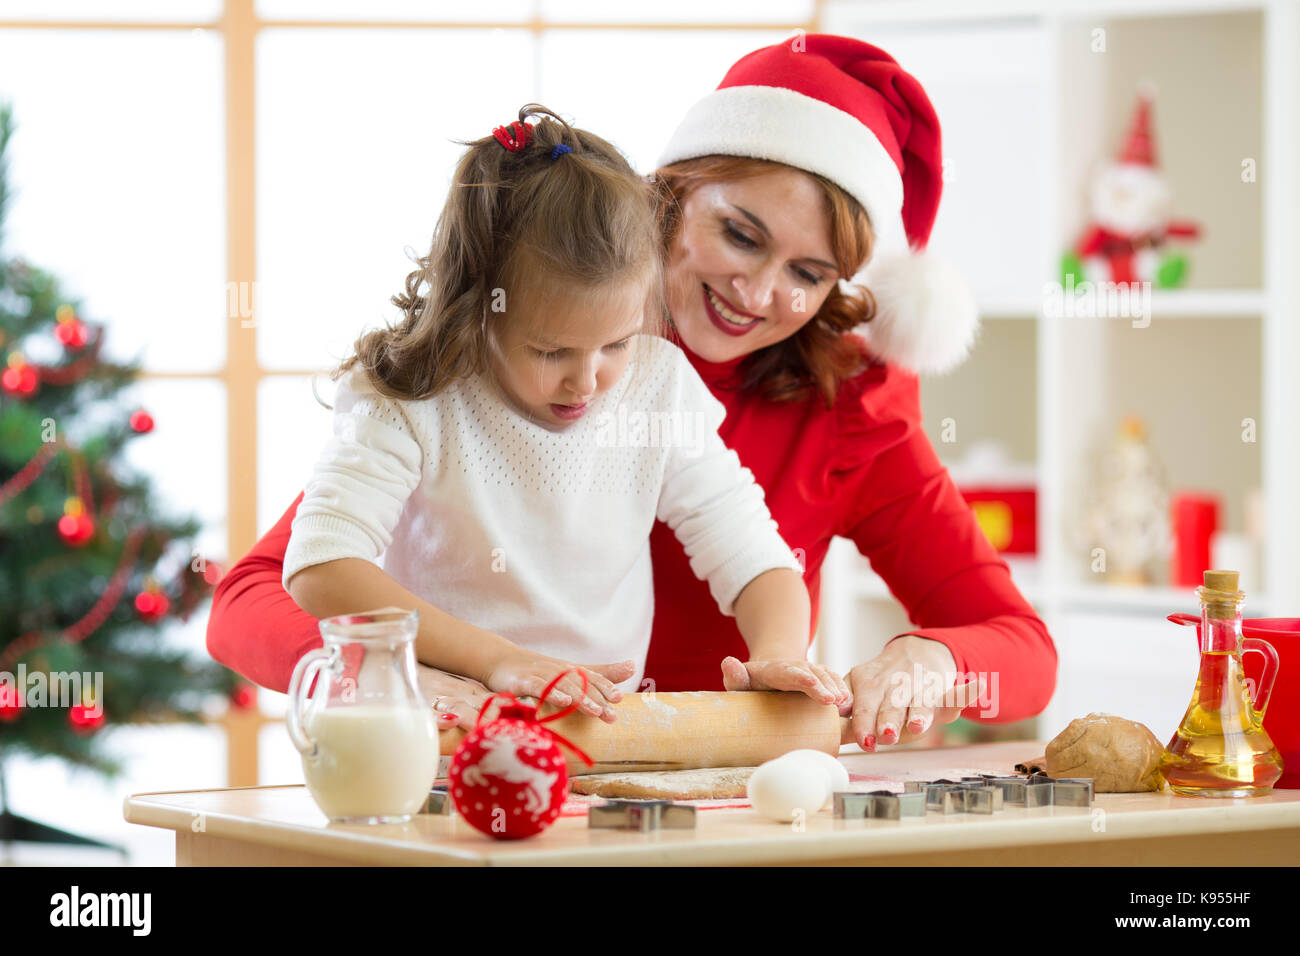 family mother and child rolling the dough, bake christmas cookies in festival decorated room - Stock Image